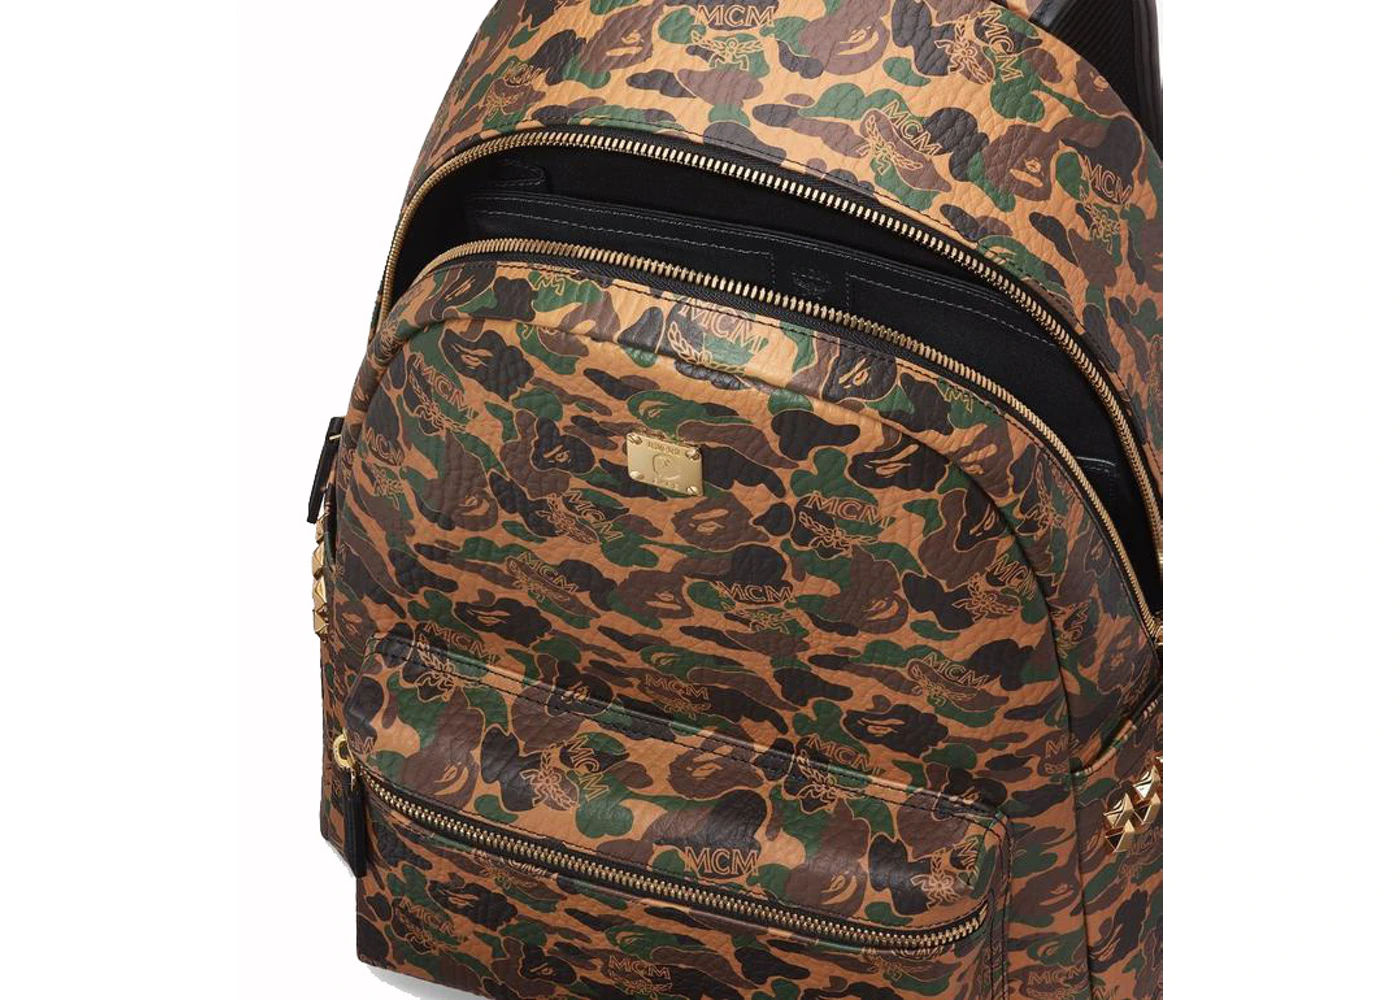 Balo Mcm x Bape Stark Backpack Medium Visetos Camo in Coated Canvas with 24k Gold Plated